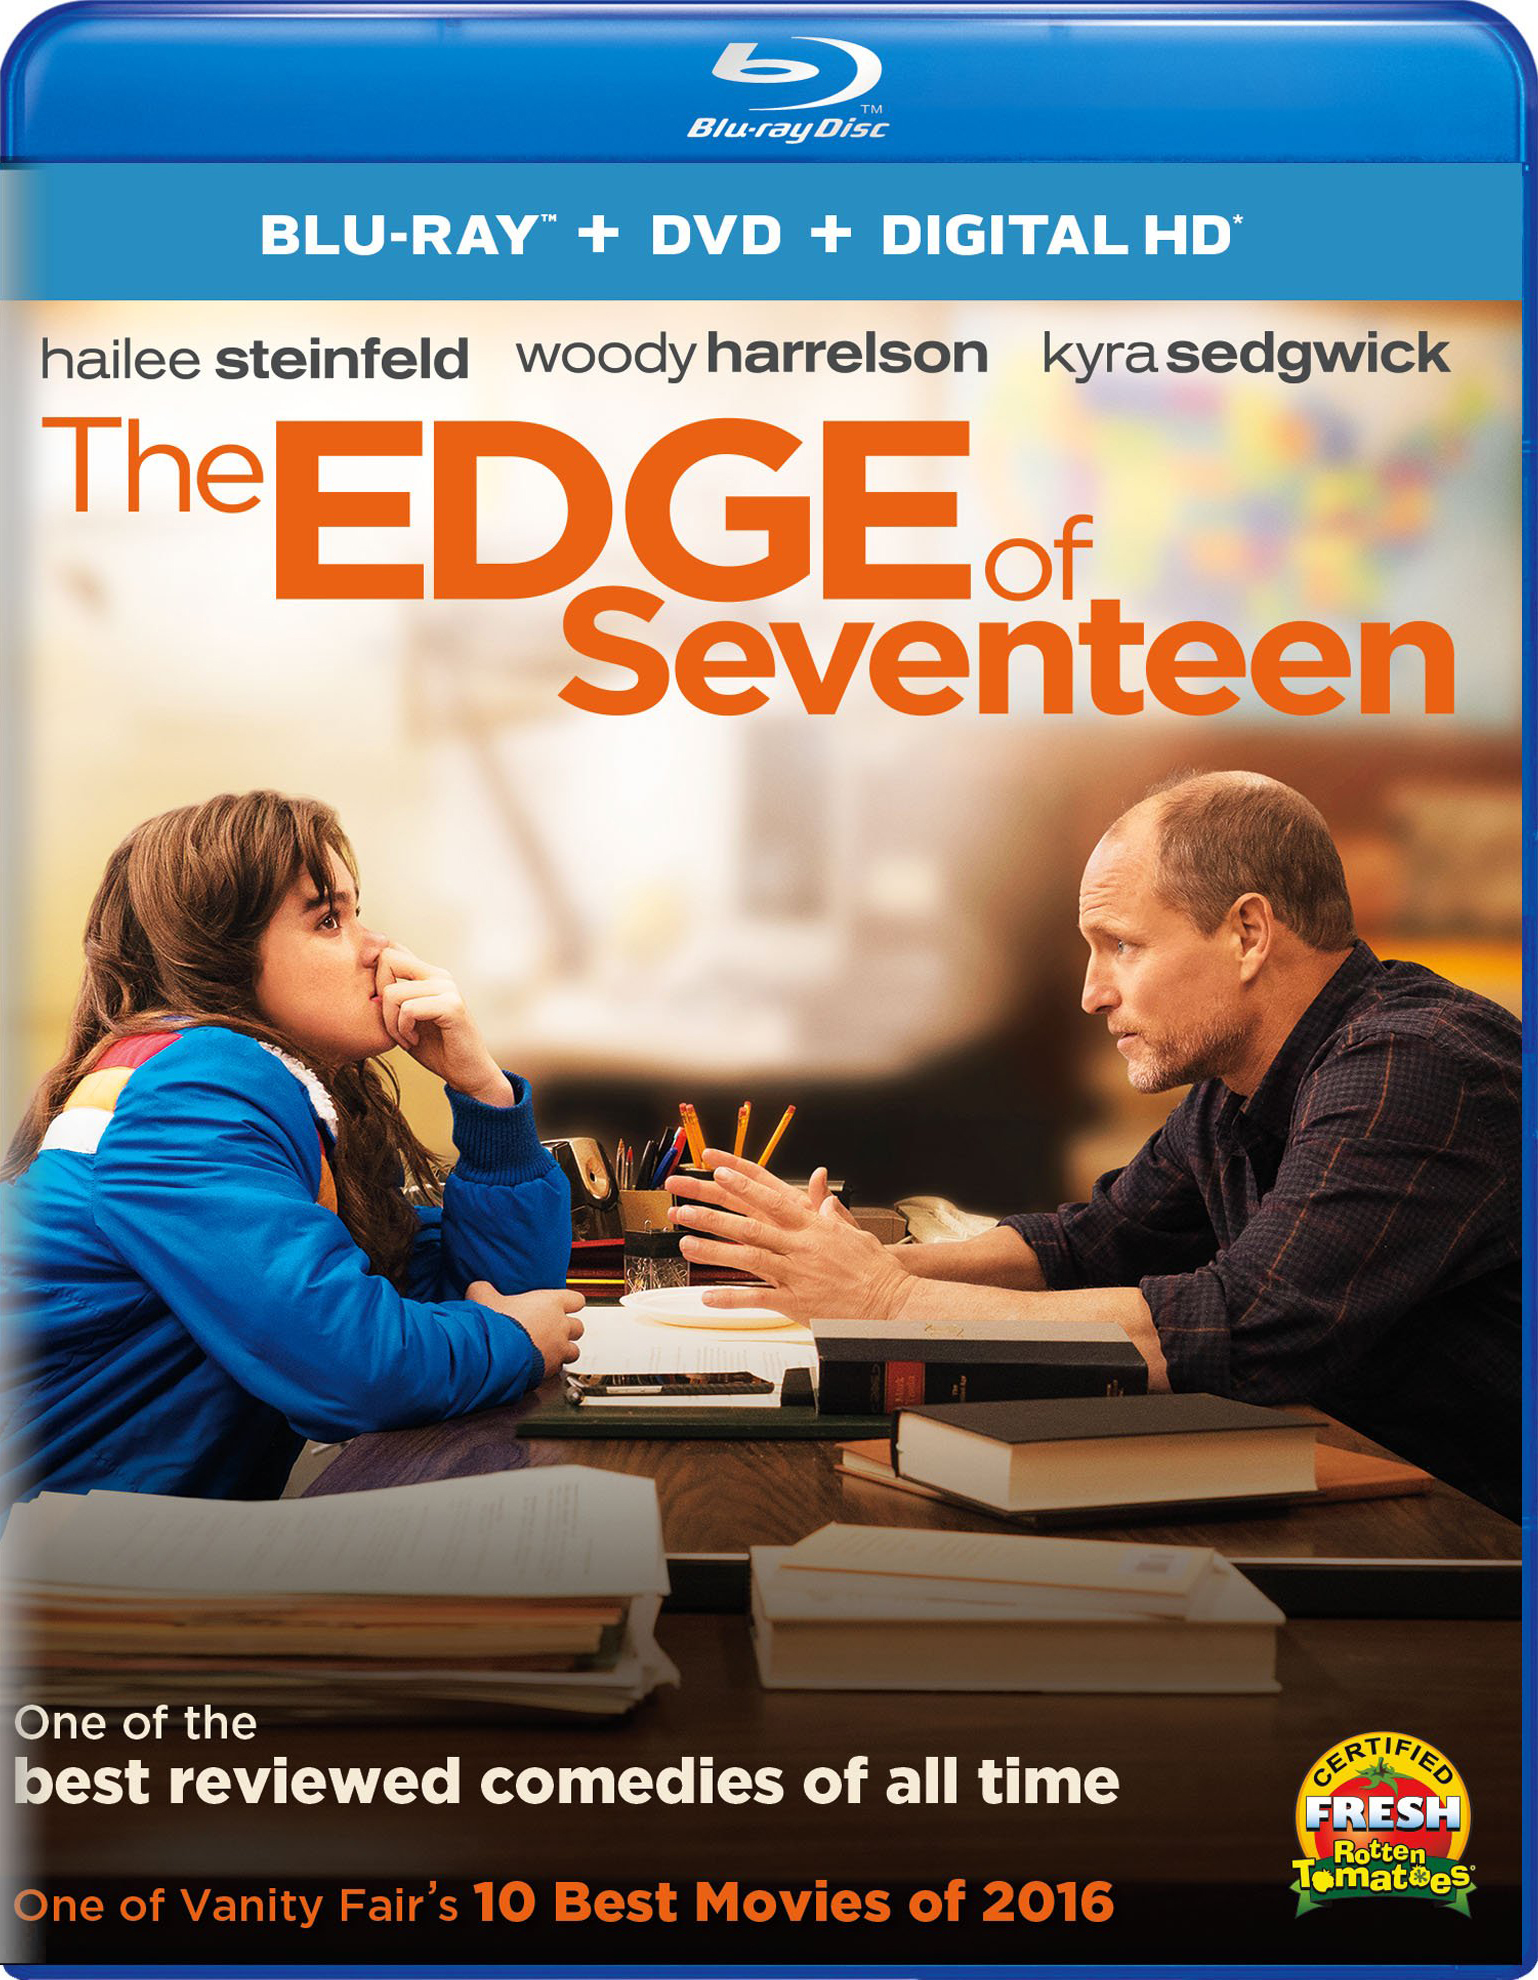 THE EDGE OF SEVENTEEN Blu-ray